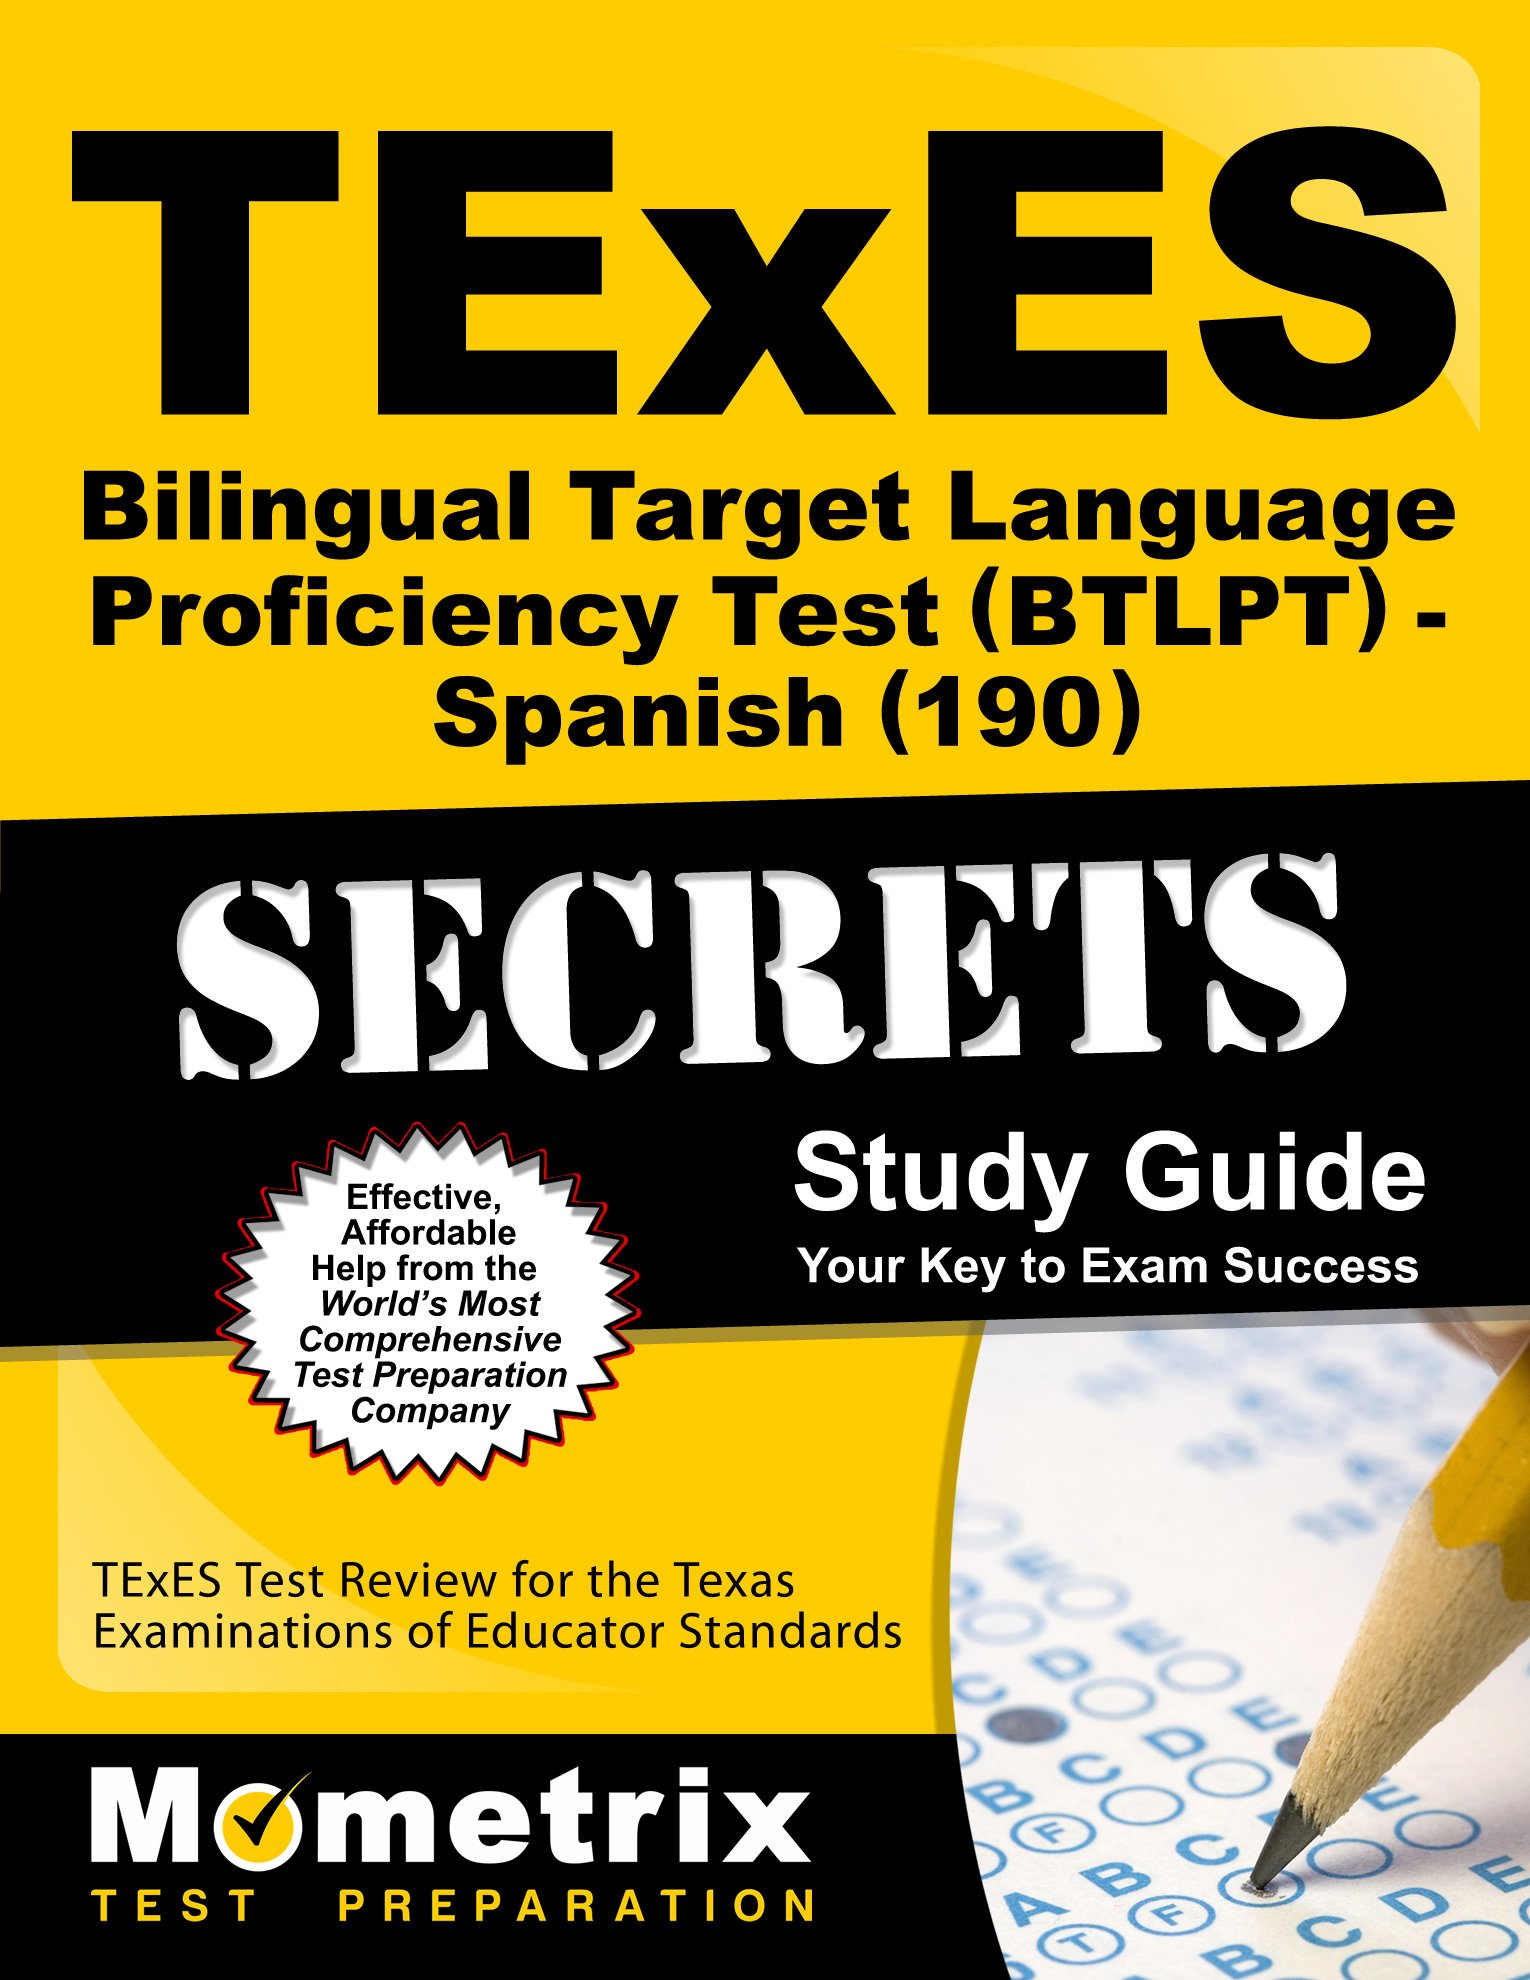 TExES Bilingual Target Language Proficiency Test (BTLPT) - Spanish (190) Secrets Study Guide: TExES Test Review for the Texas Examinations of Educator Standards by Mometrix Media LLC